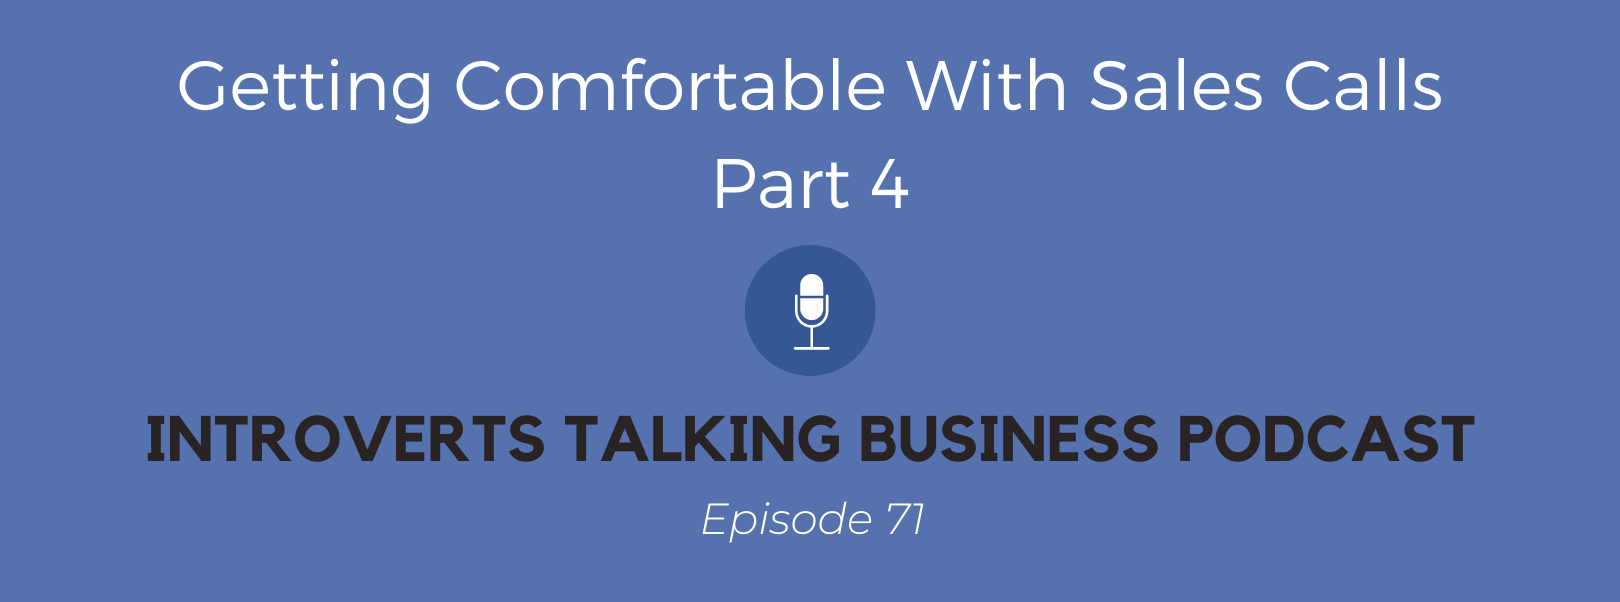 Getting Comfortable With Sales Calls, Part 4